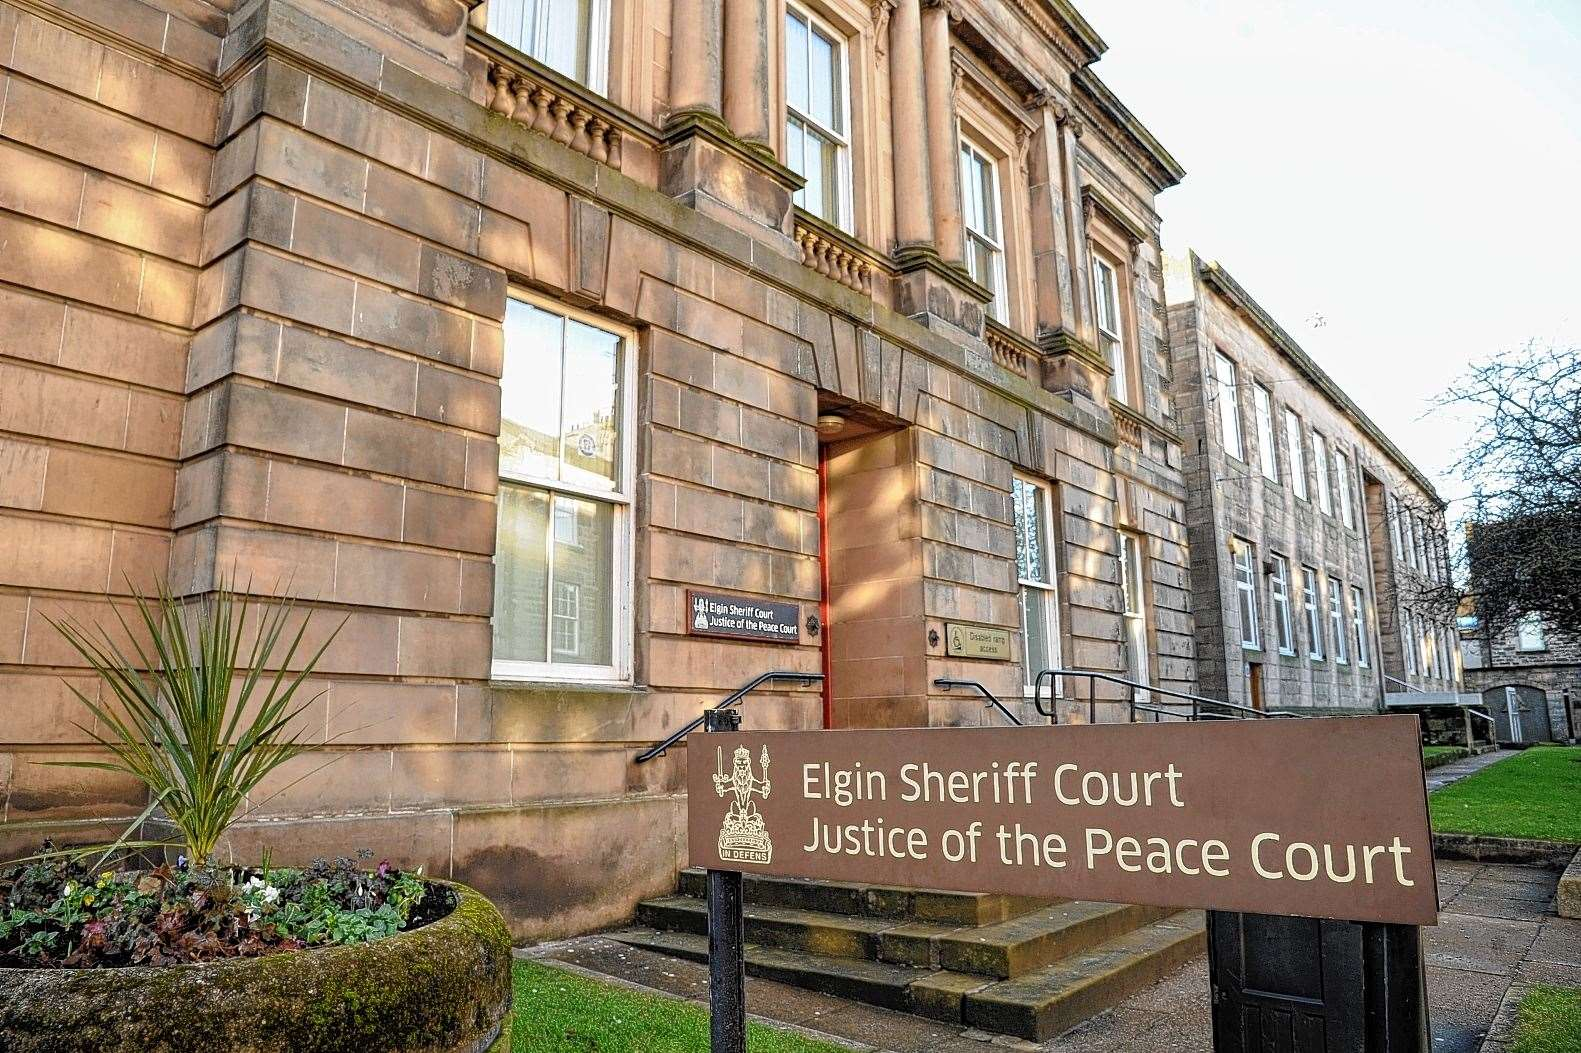 Jordan Mackenzie appeared at Elgin Sheriff Court on Thursday.